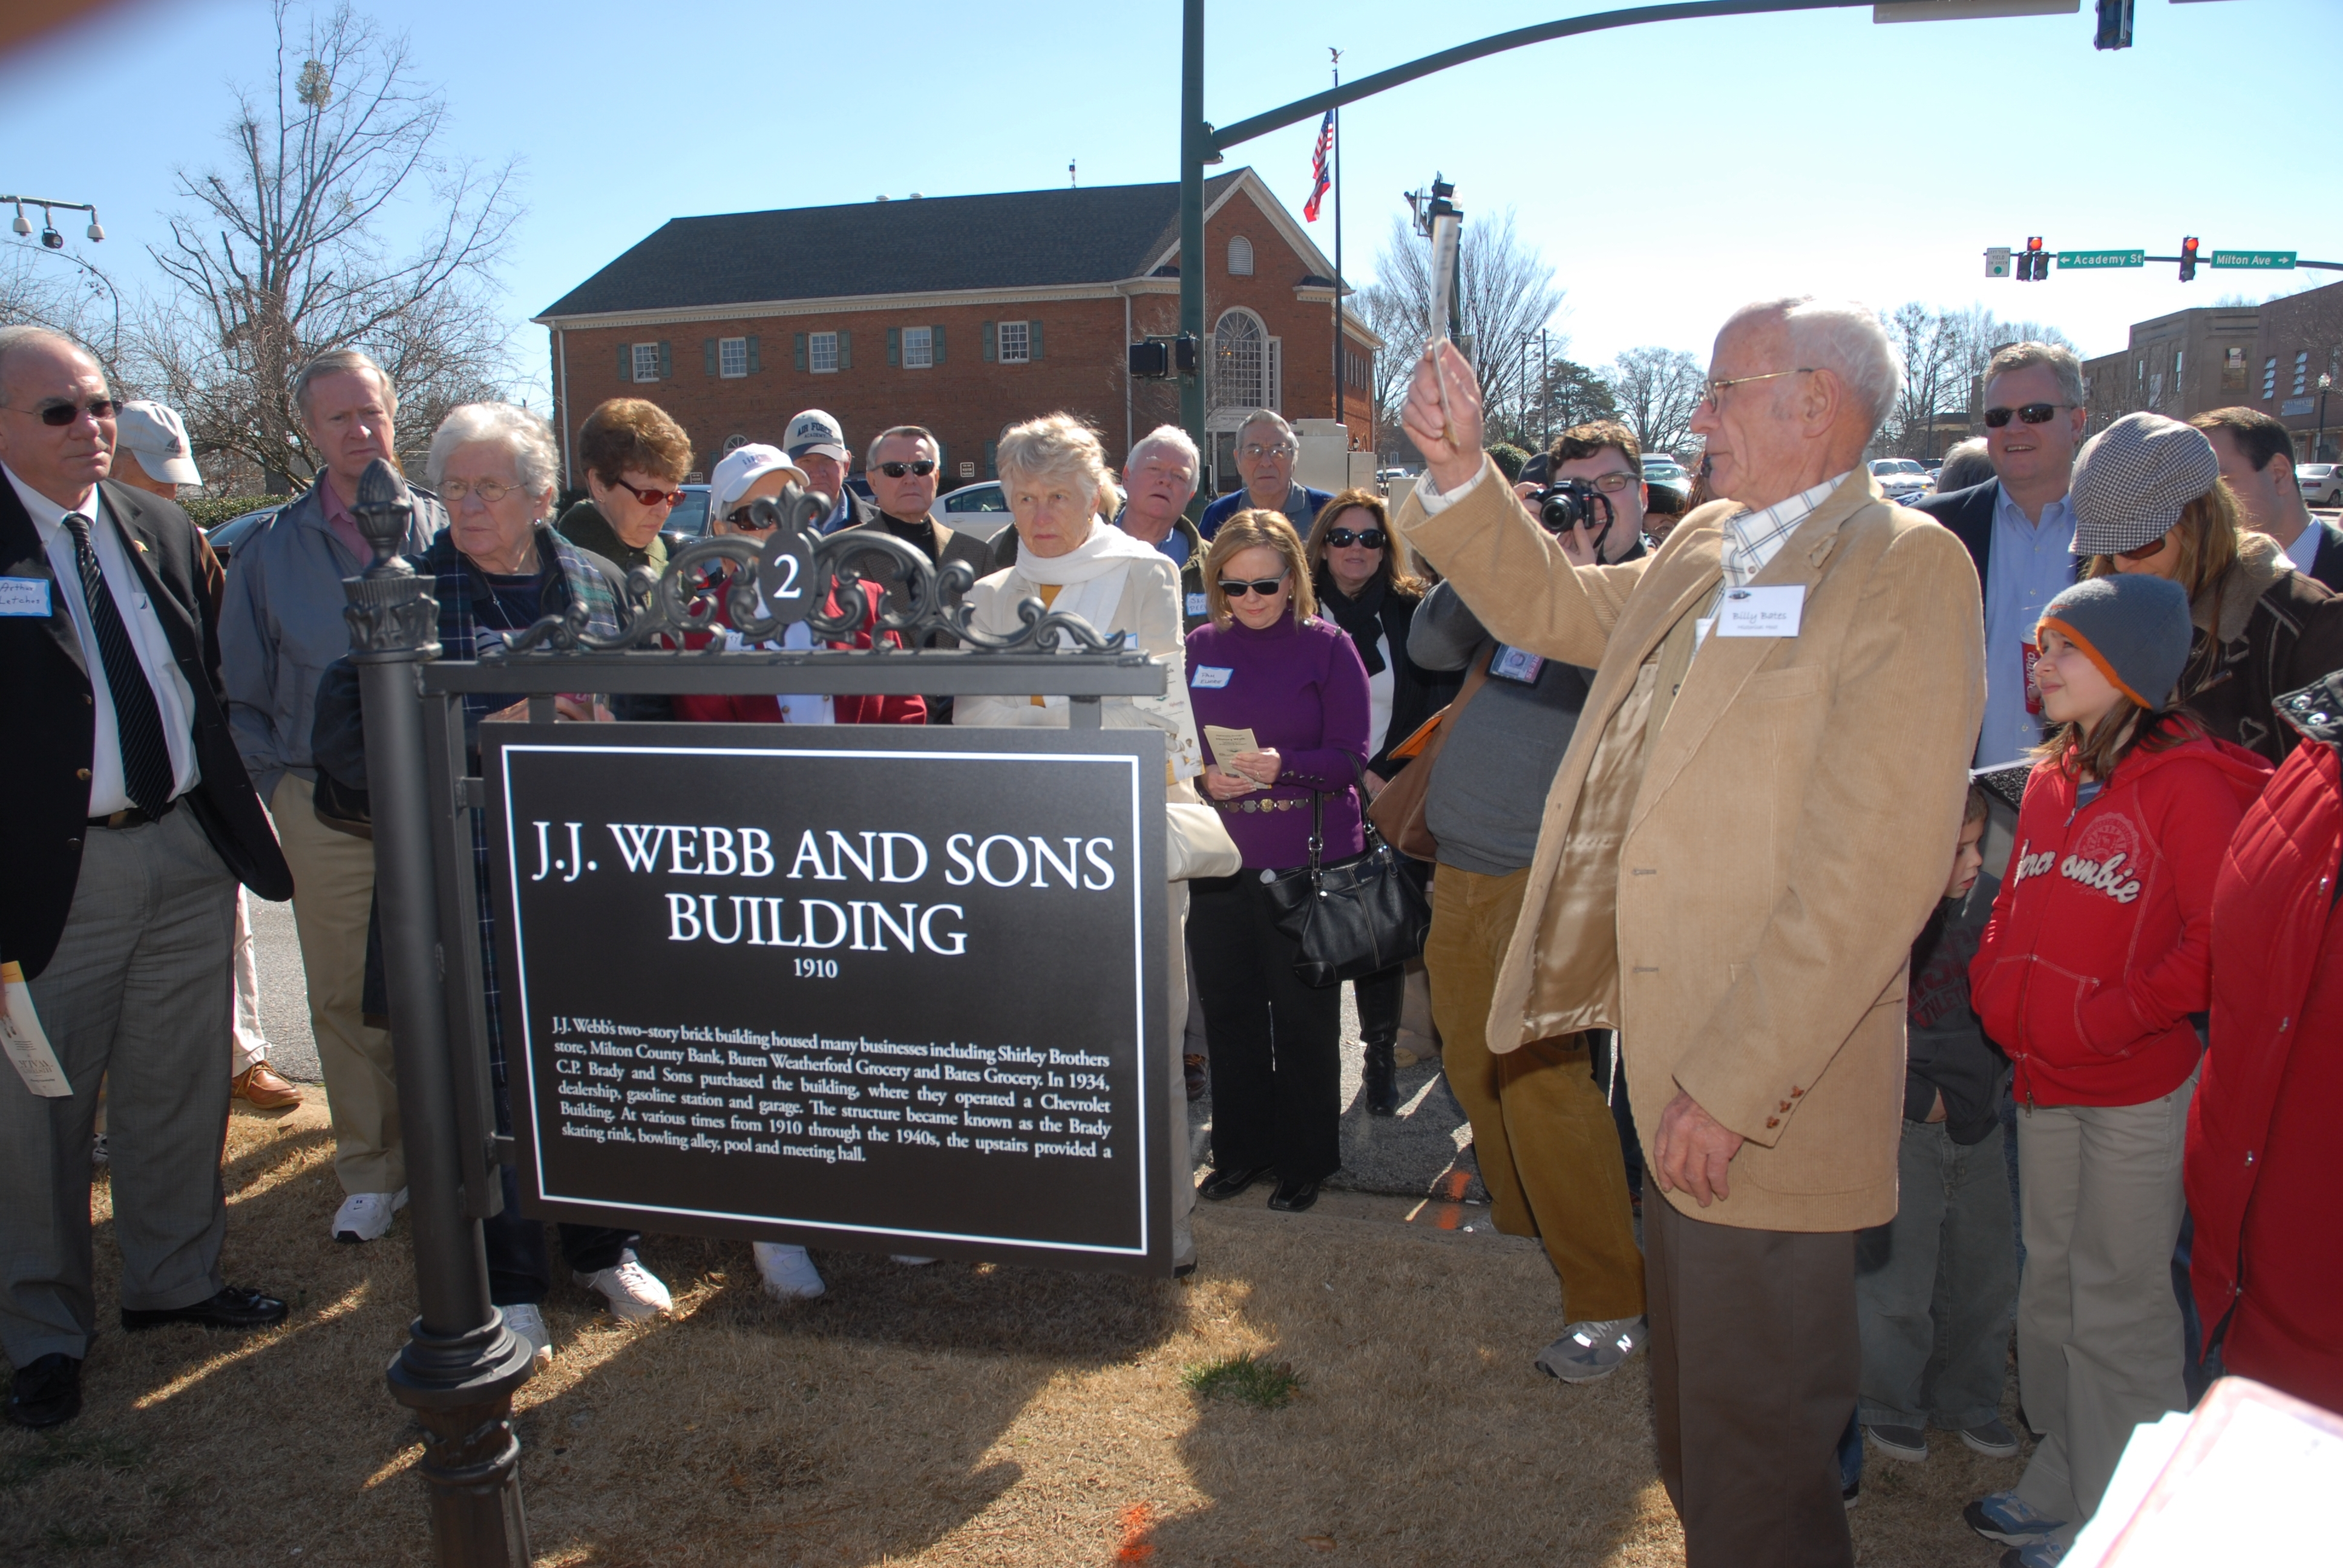 The City of Alpharetta, in partnership with the Alpharetta Convention and Visitors' Bureau and the Alpharetta Historical Society, inaugurated the city's History Walk. The walking tour consists of sites with markers describing their historical significance.